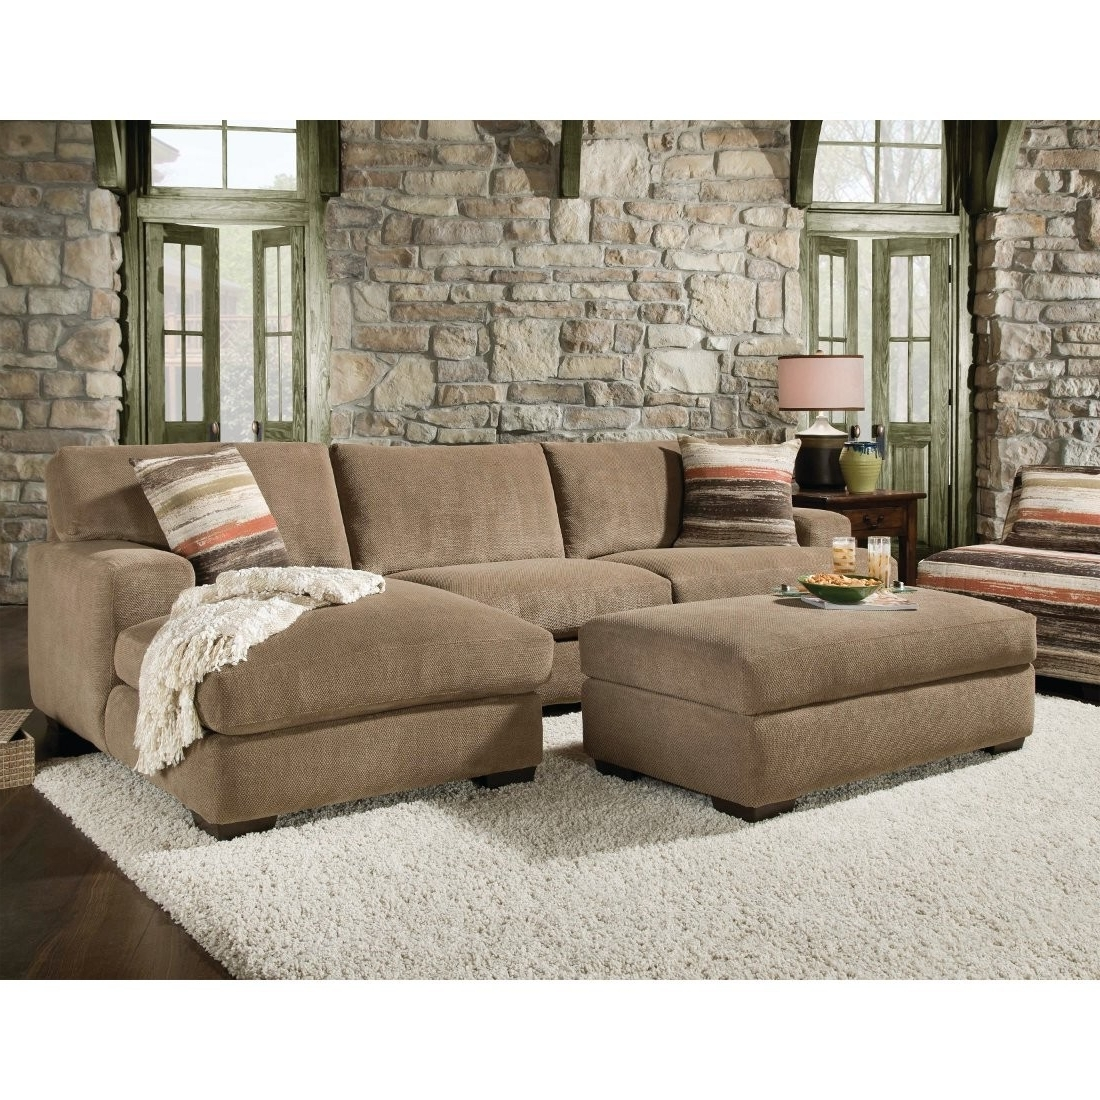 Well Known Sofa Sectionals With Chaise Inside 72 Inch Sofa Sectional Sleeper Sofa Ikea Small Sectionals For (View 2 of 15)